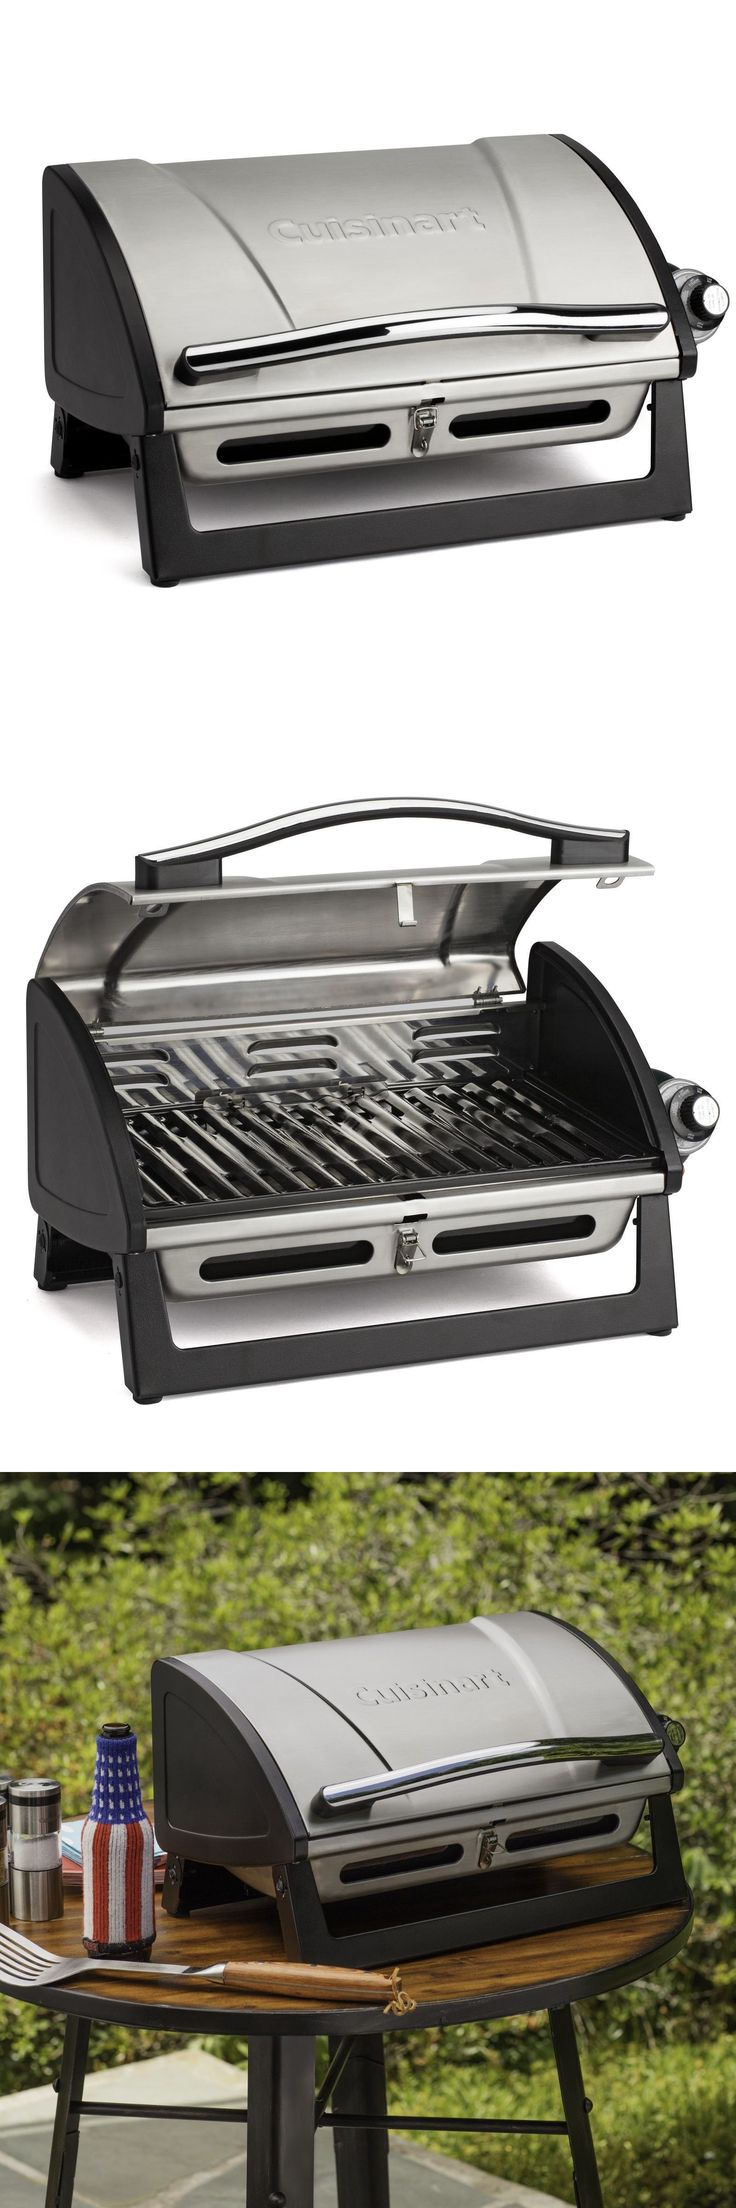 Barbecues Grills and Smokers 151621: Cuisinart Cgg-059 Grillster 8,000 Btu Portable Gas Grill -> BUY IT NOW ONLY: $65 on eBay!